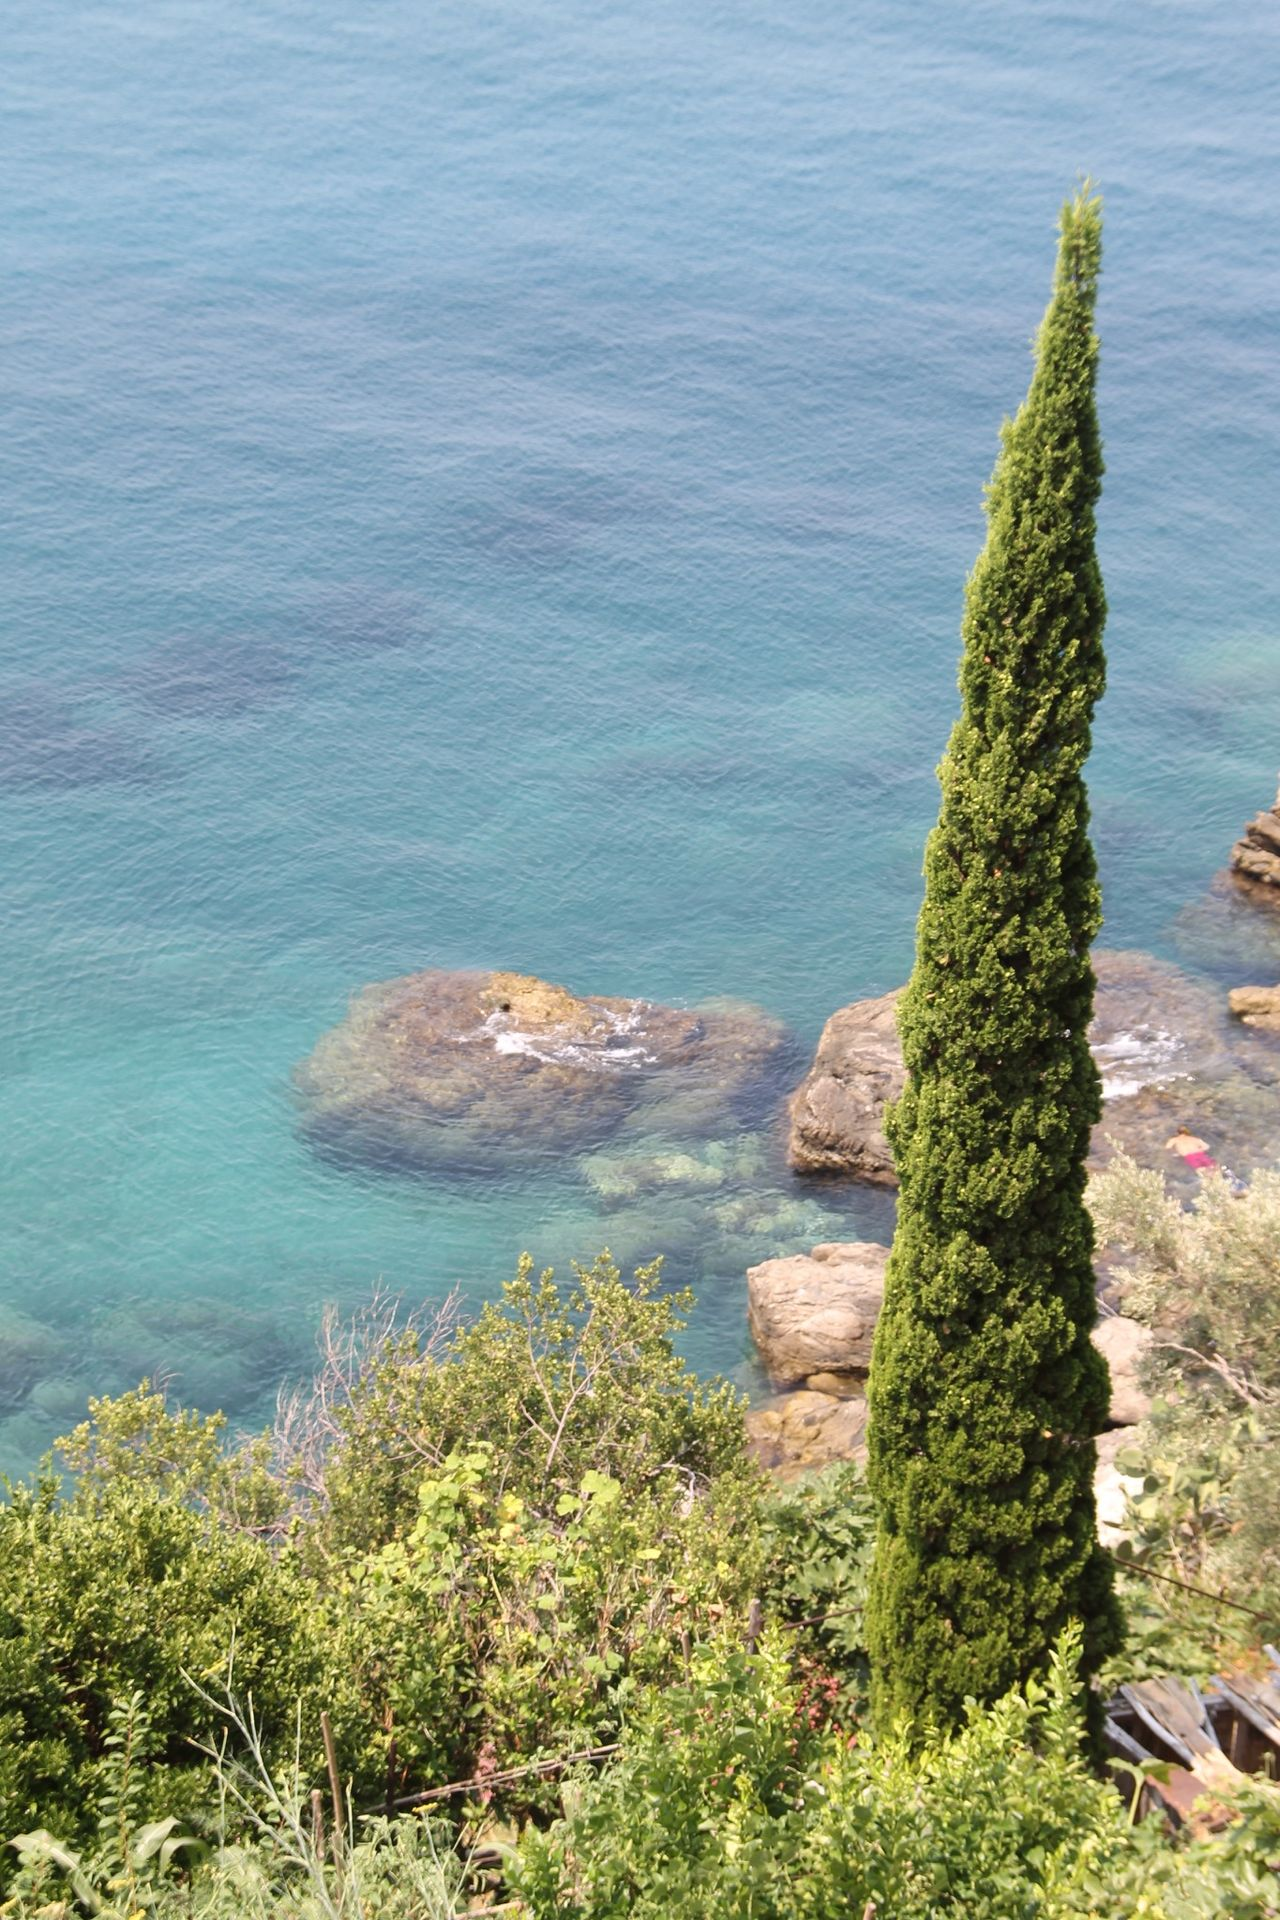 Scilla Calabria Calabria (Italy) Italy Italy❤️ My Travel In Italy Traveling Travel The Purist (no Edit, No Filter)